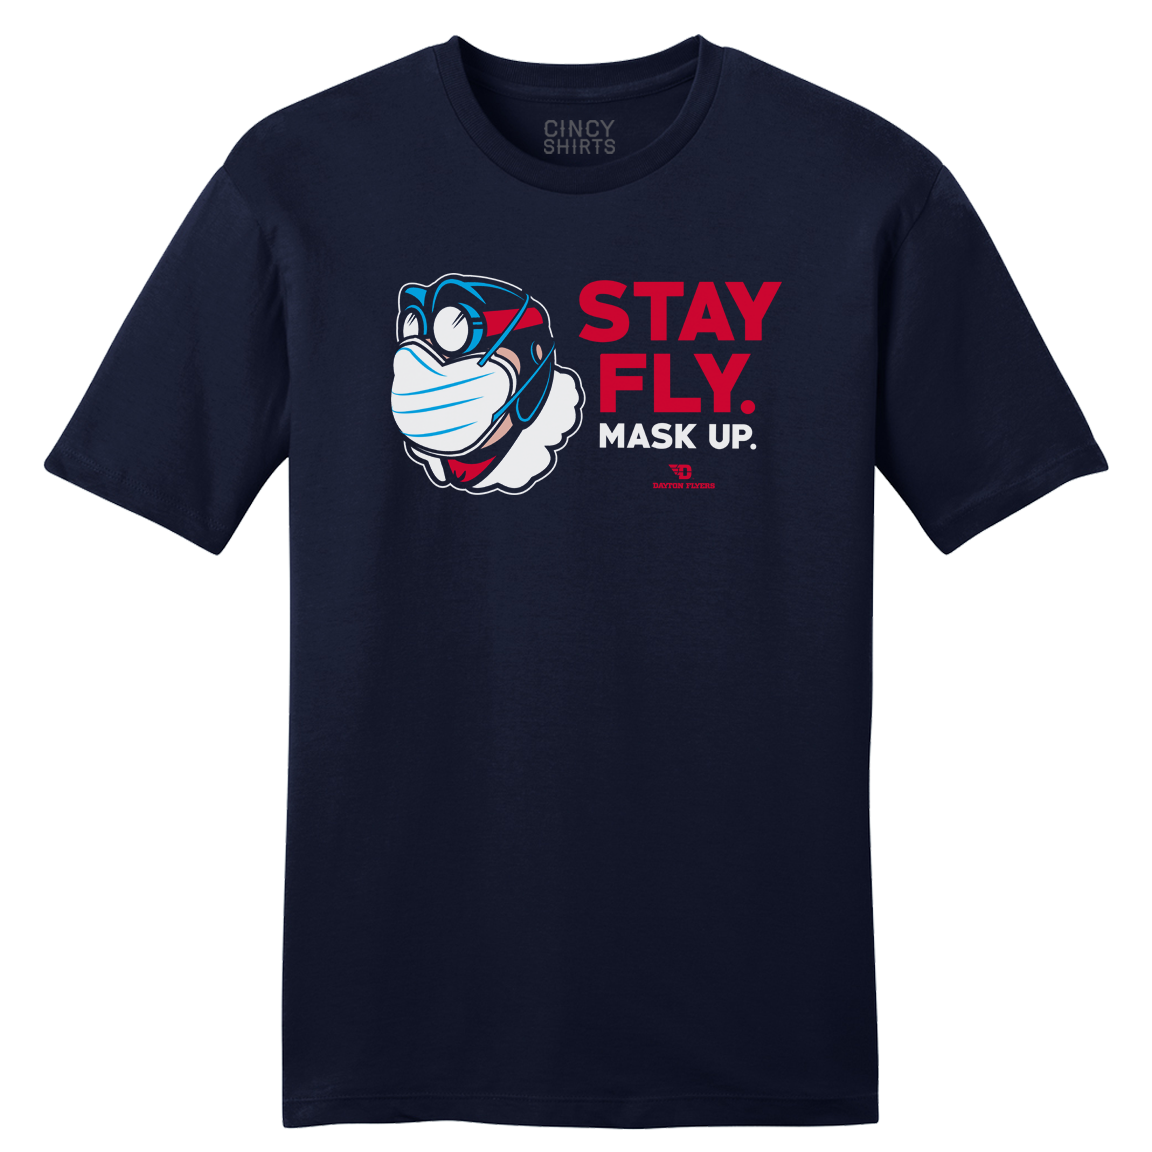 Stay Fly. Mask Up. University of Dayton Mask T-shirt - Cincy Shirts